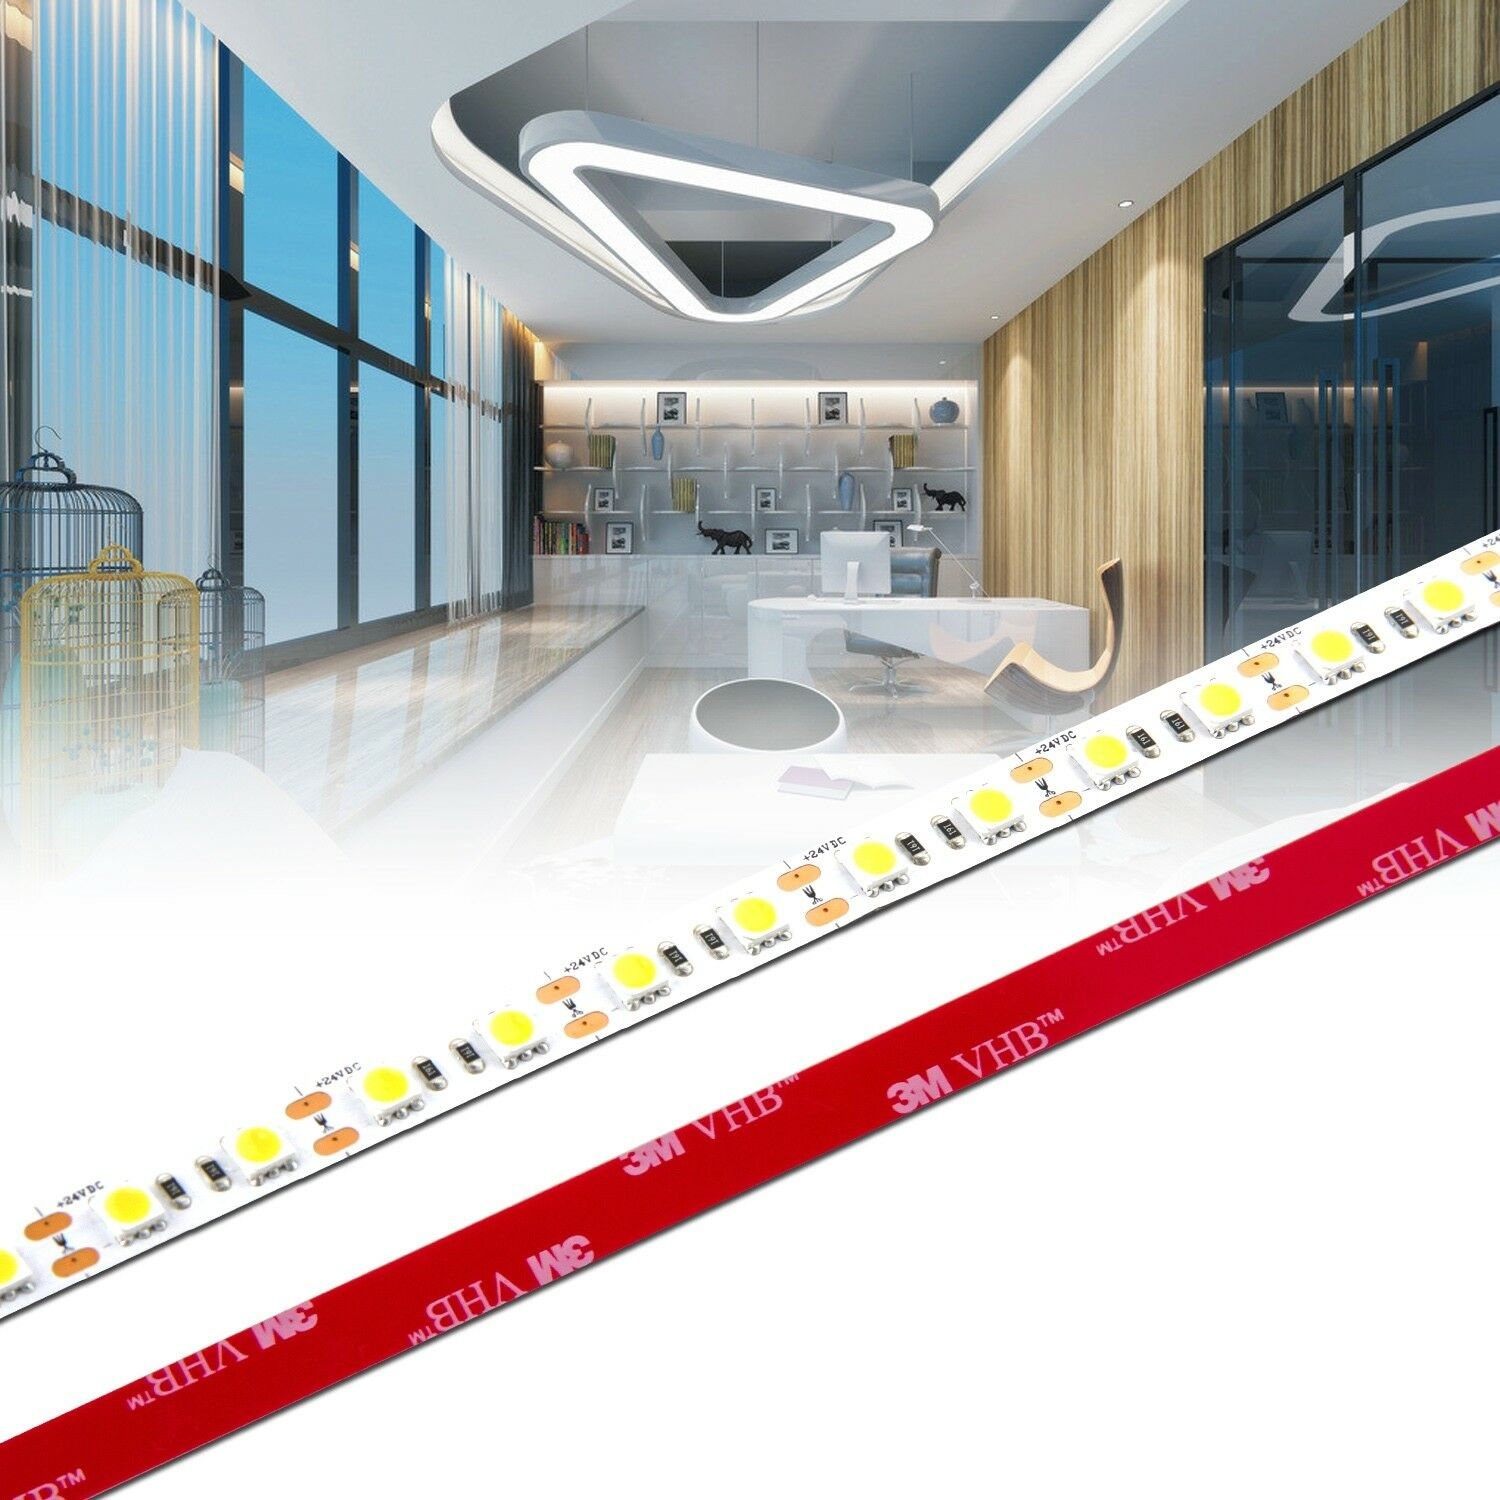 Ab 0 5m 20m ra 90 led band 3 chip 5050 neutralwei for Raumgestaltung chip